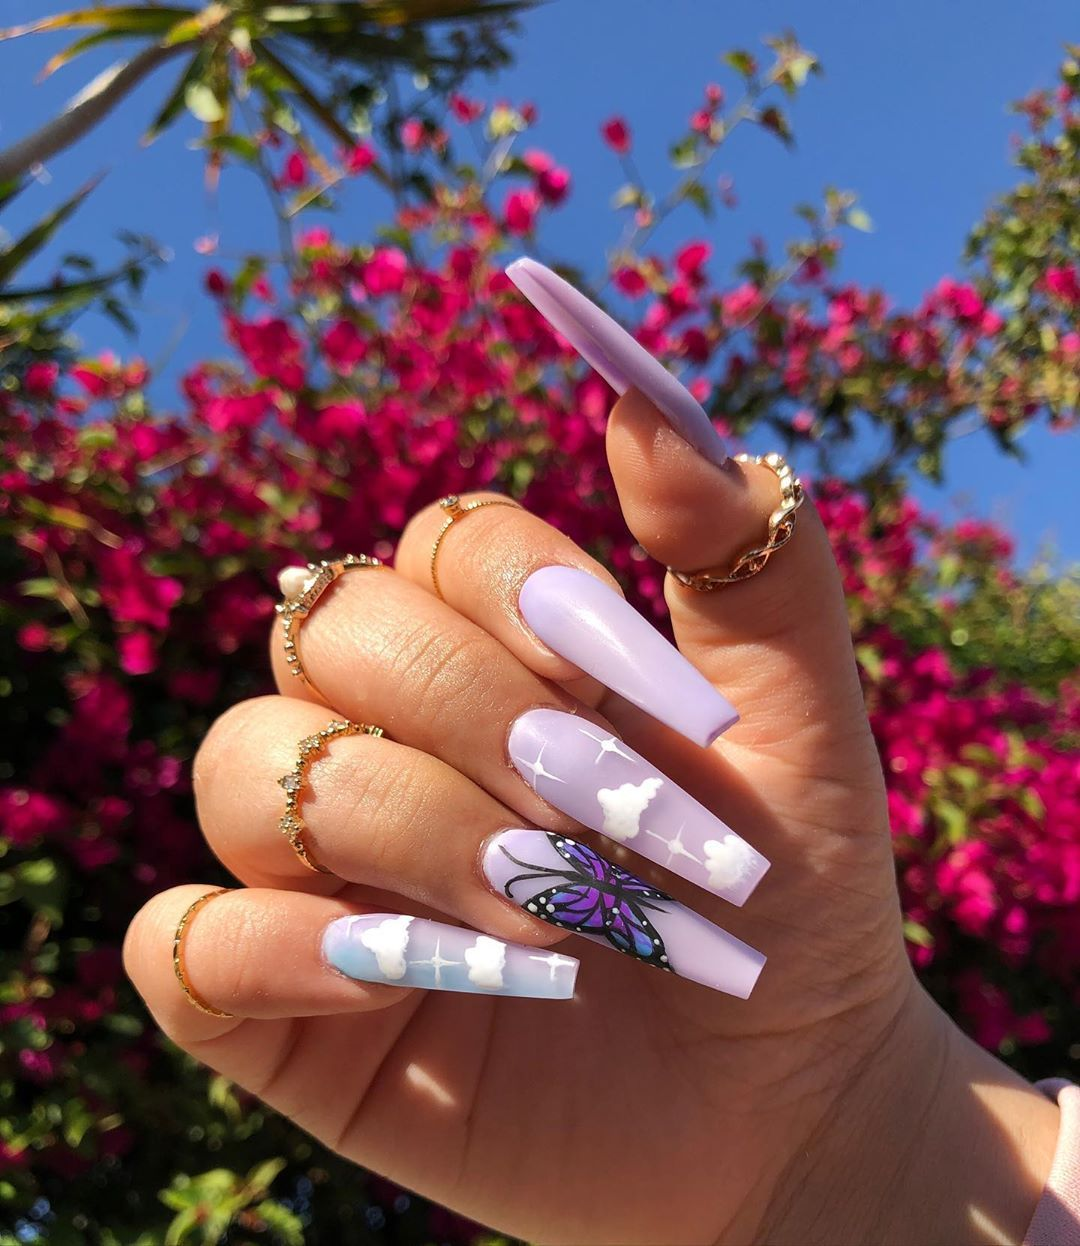 "💅🏻Brenda 🇲🇽 on Instagram: ""Recreated set inspired by @nailedbycleo 💜 all colored acrylic & hand drawn ❣️#butterflynails#mattenails"""